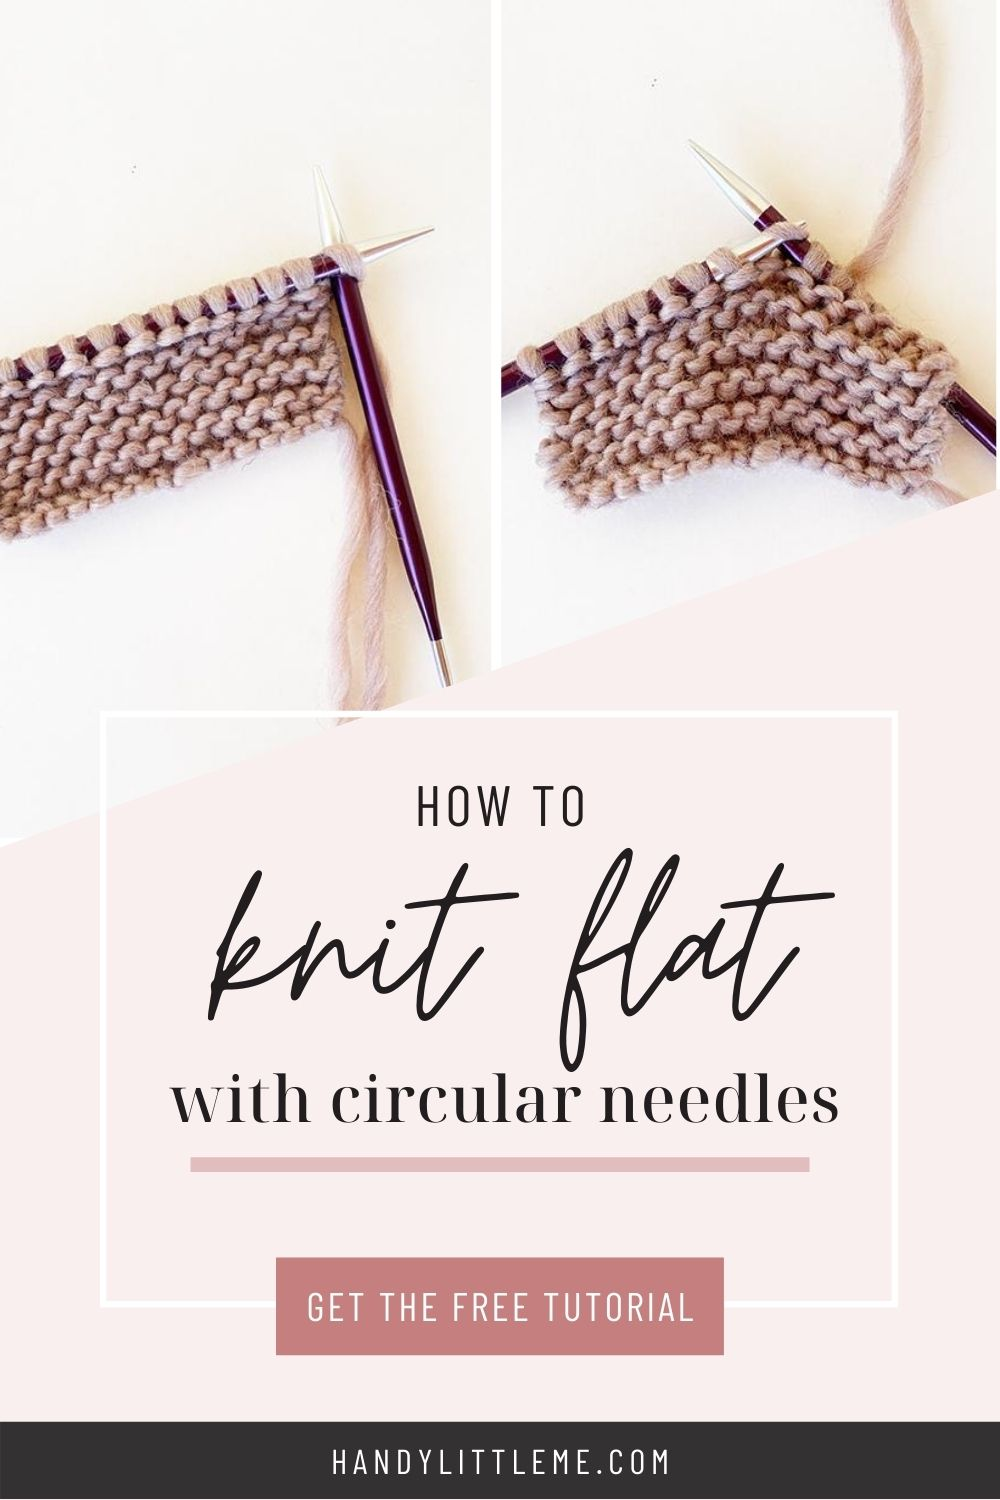 How to knit flat with circular needles